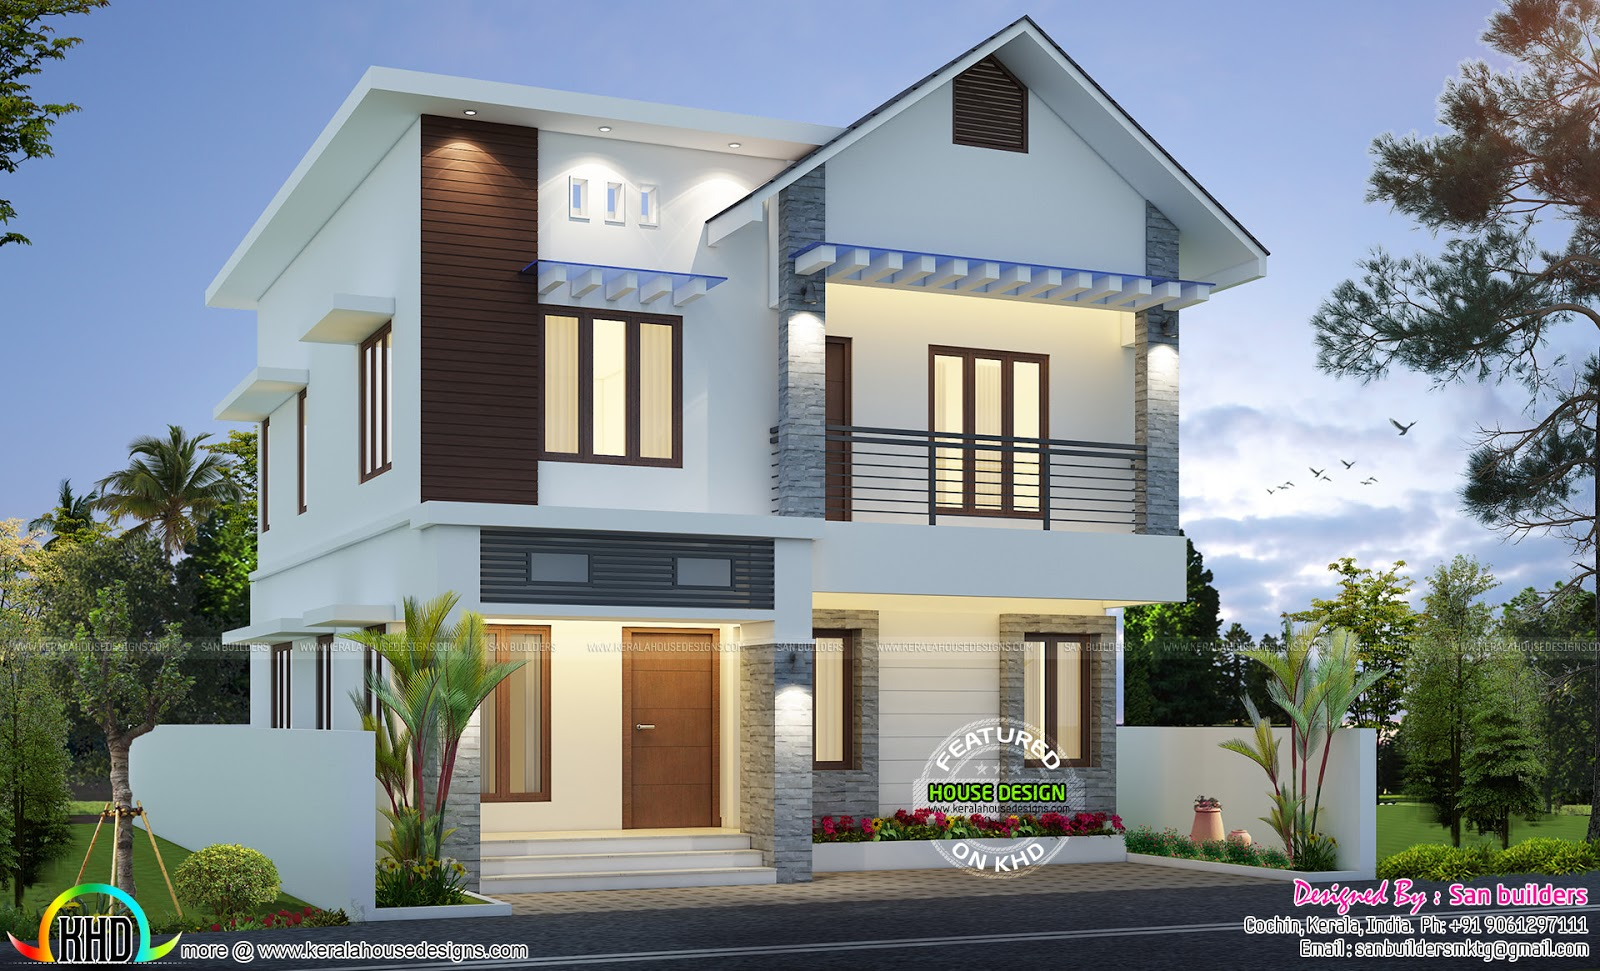 1431 sq ft cute home plan kerala home design and floor plans for Kerala house designs and floor plans 2016